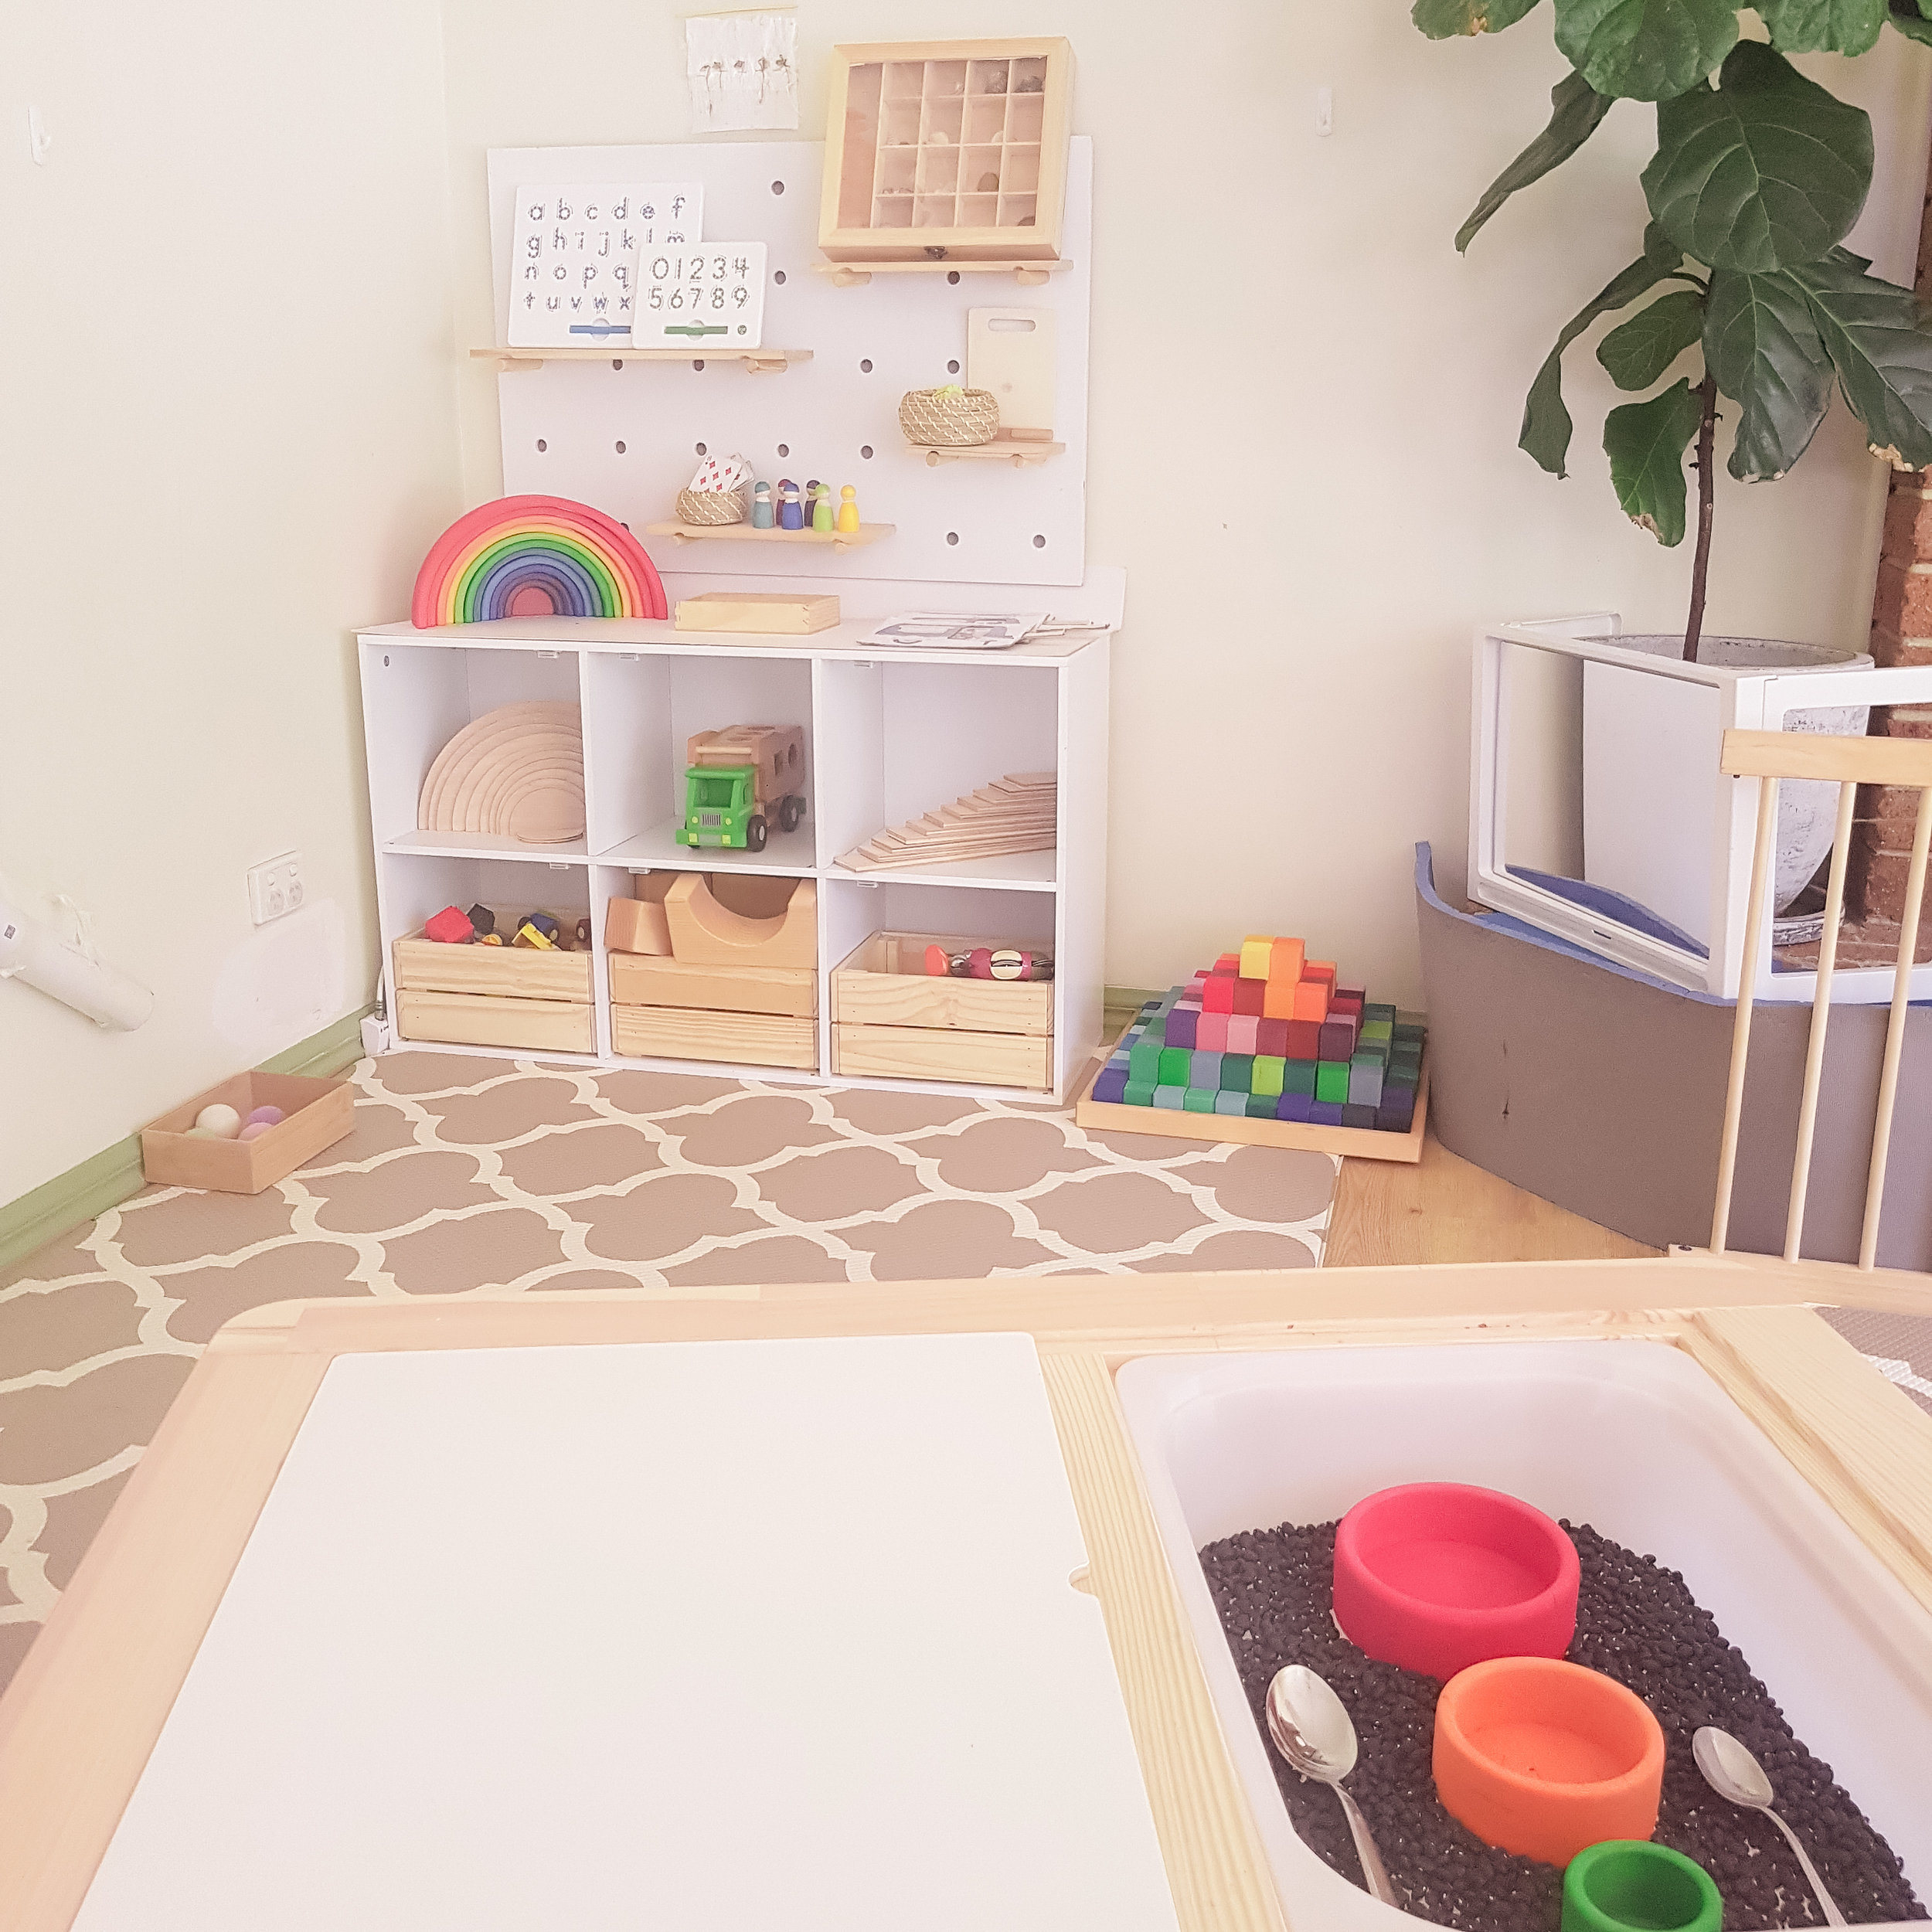 Minimalistic playroom courtesy of  @ zaras_ play _tribe